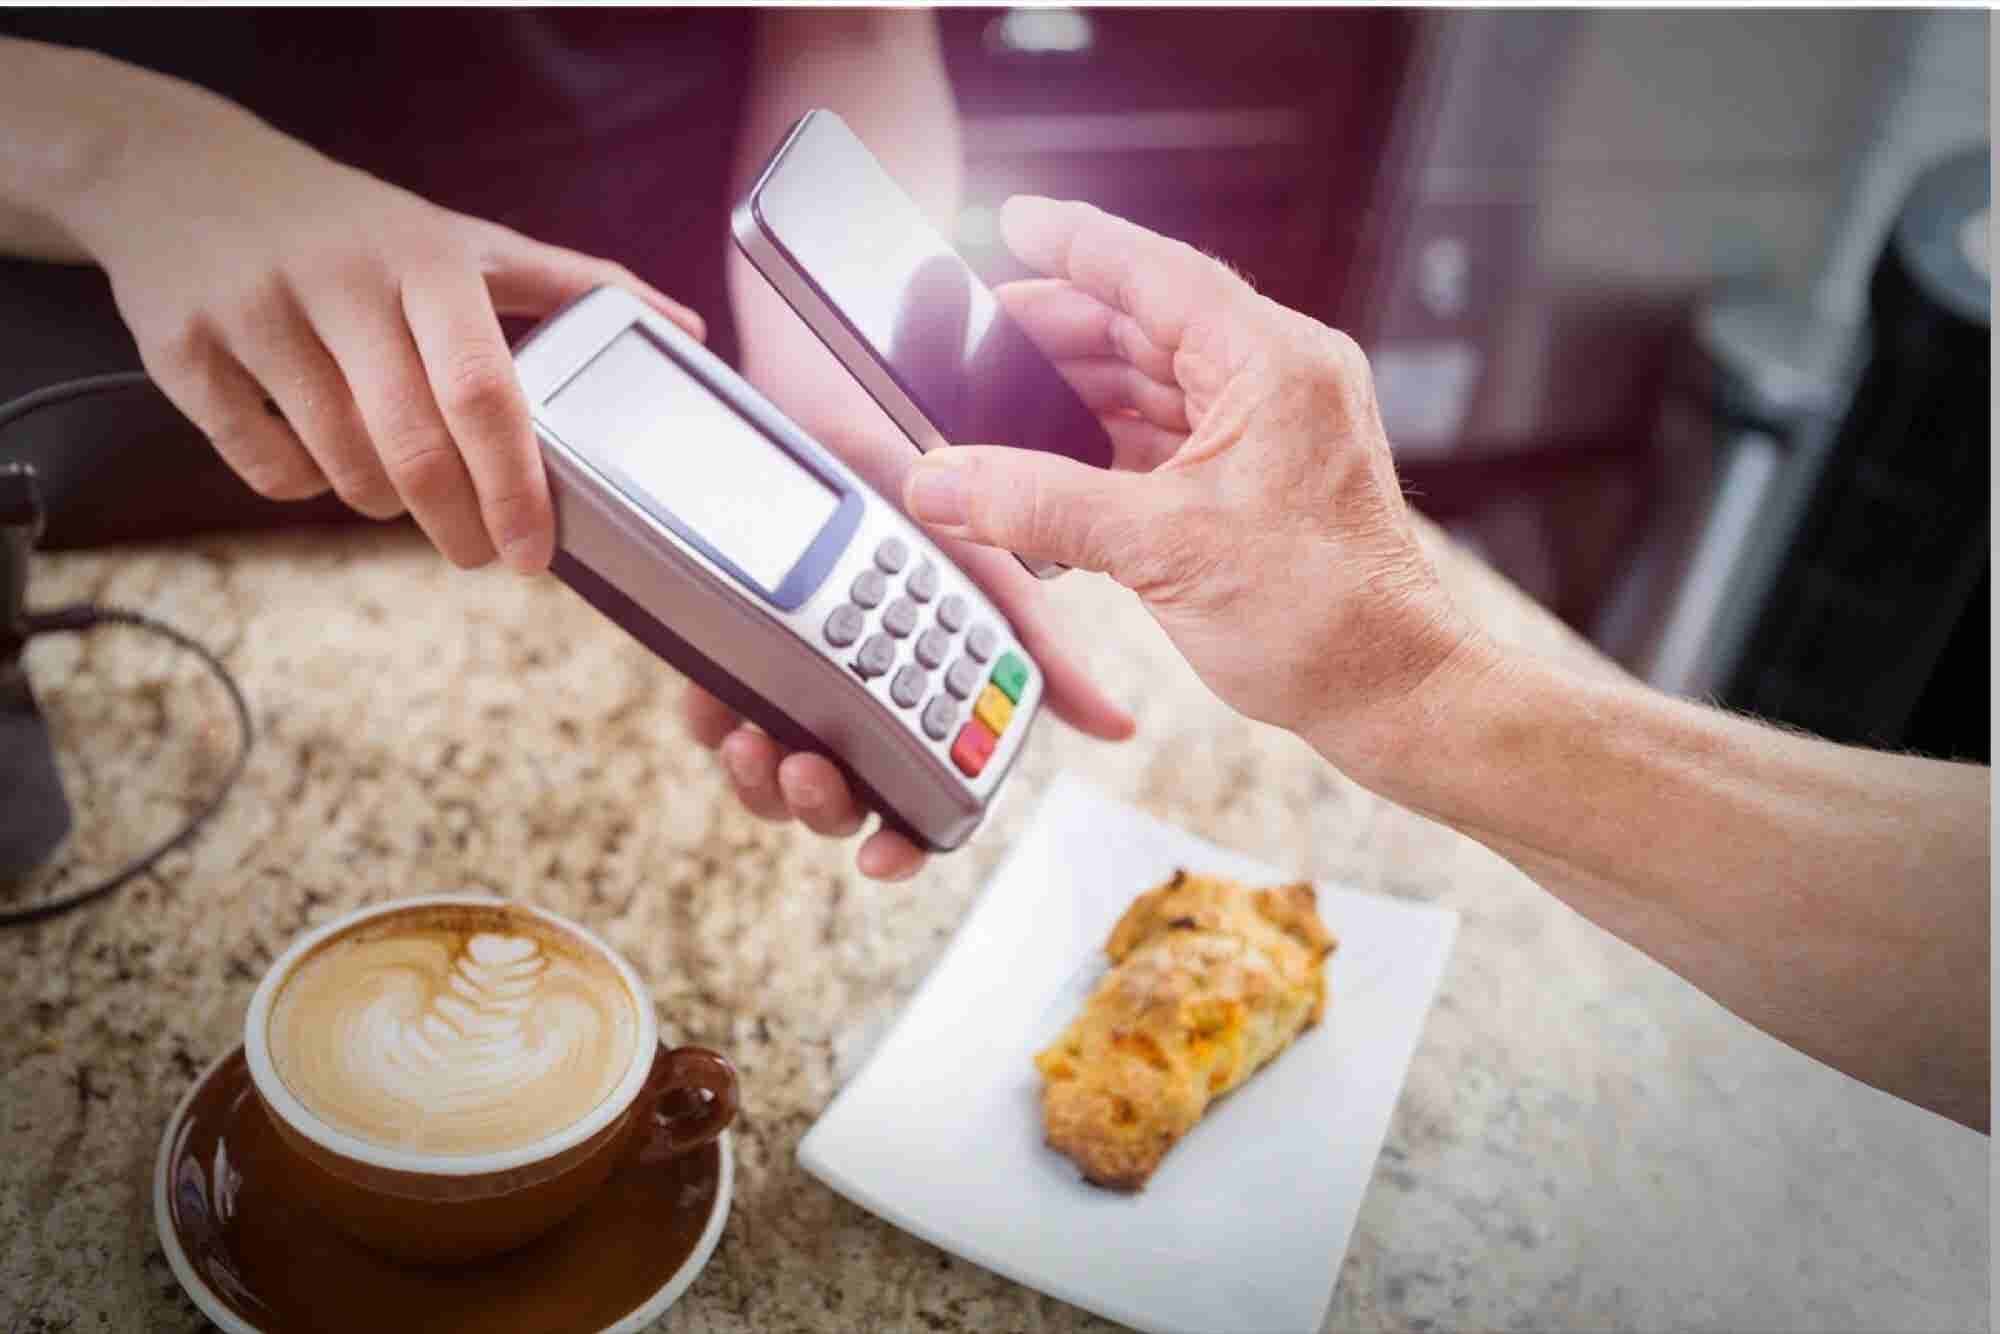 Worried About Security, Millennials Shun Mobile Payments